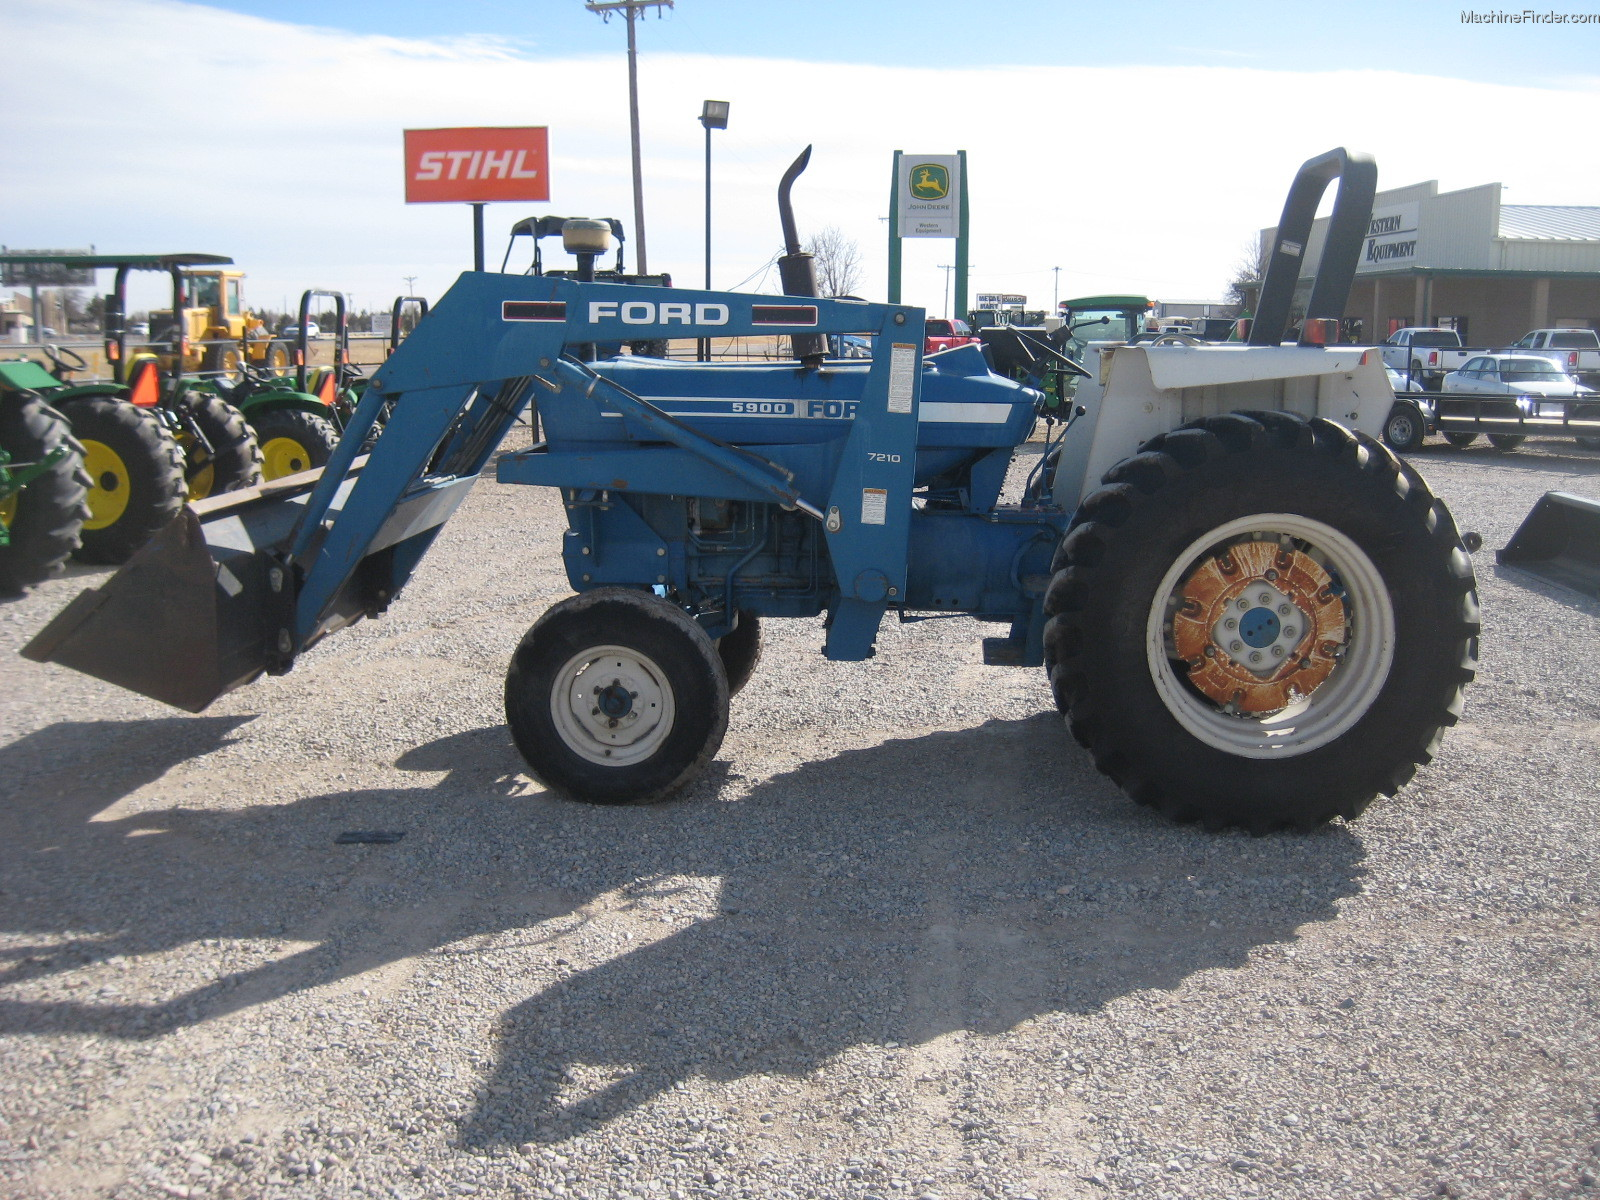 Ford 5900 Tractor Parts : Ford with loader tractors utility